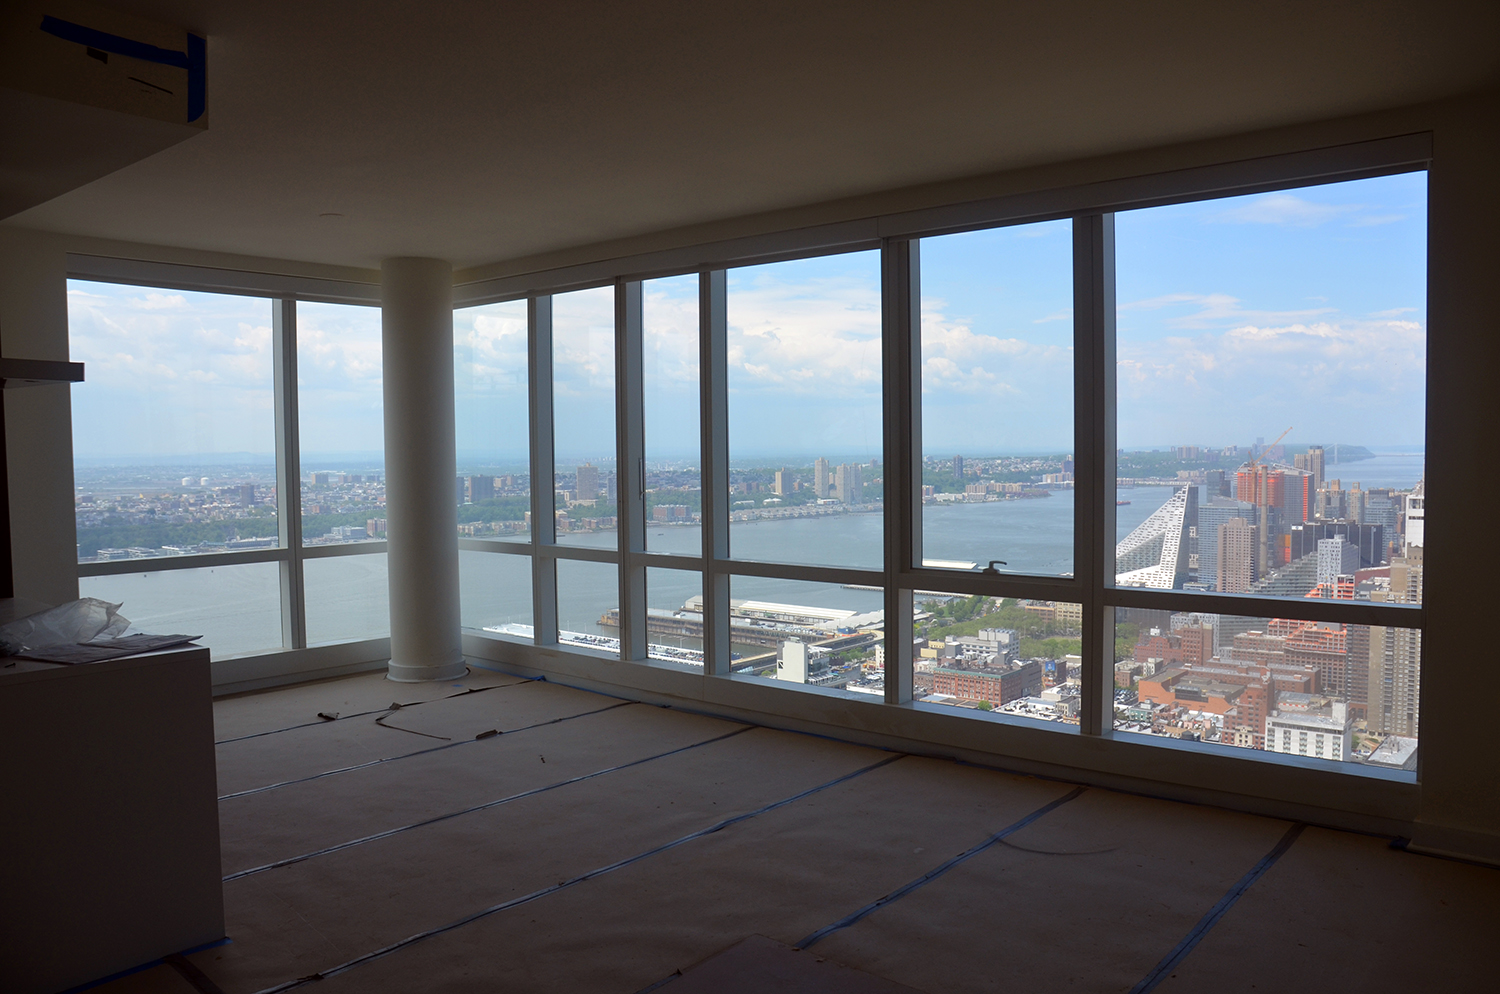 Northwest corner under renovation on the 62nd floor of Manhattan View at MiMA